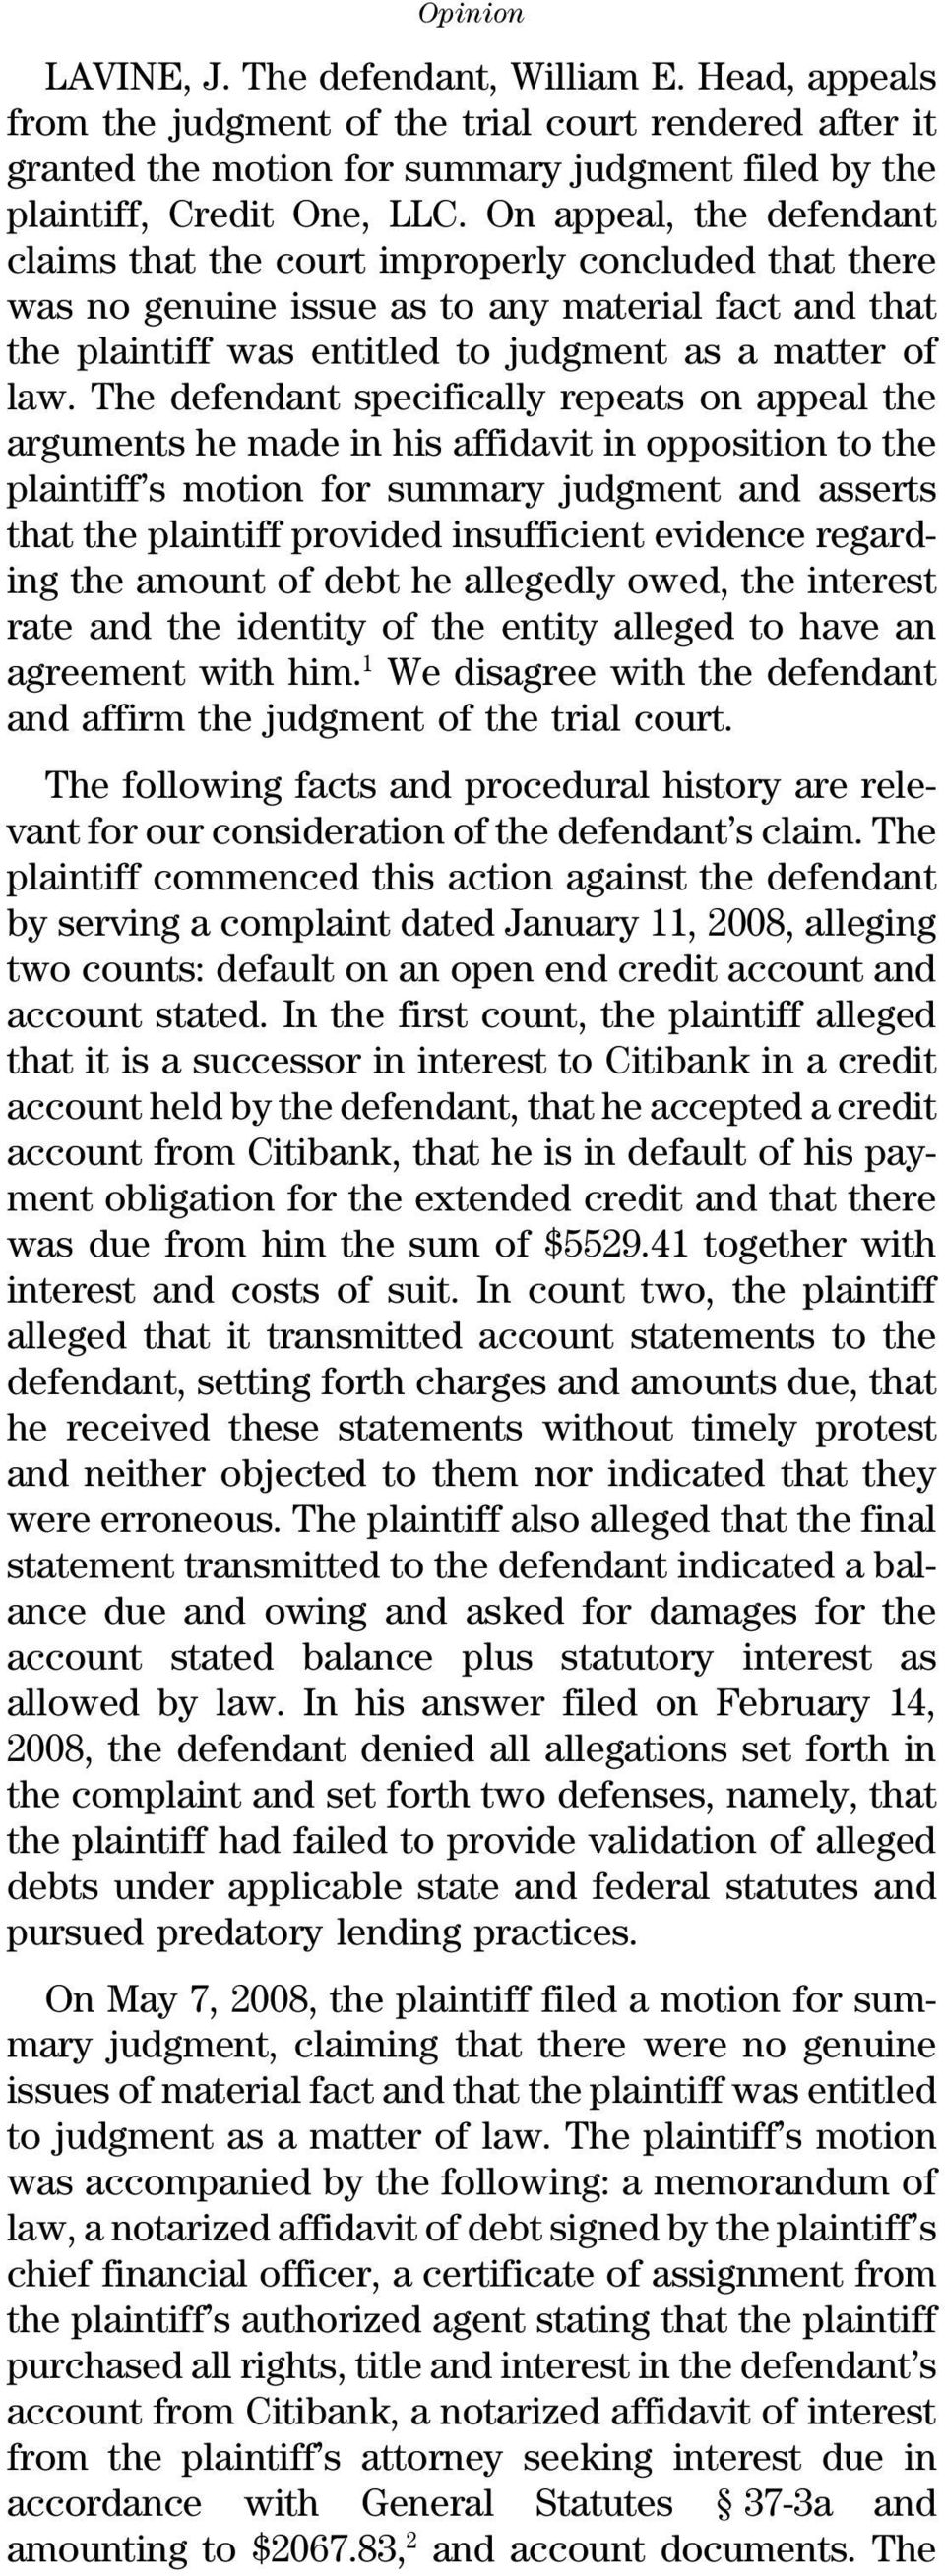 The defendant specifically repeats on appeal the arguments he made in his affidavit in opposition to the plaintiff s motion for summary judgment and asserts that the plaintiff provided insufficient